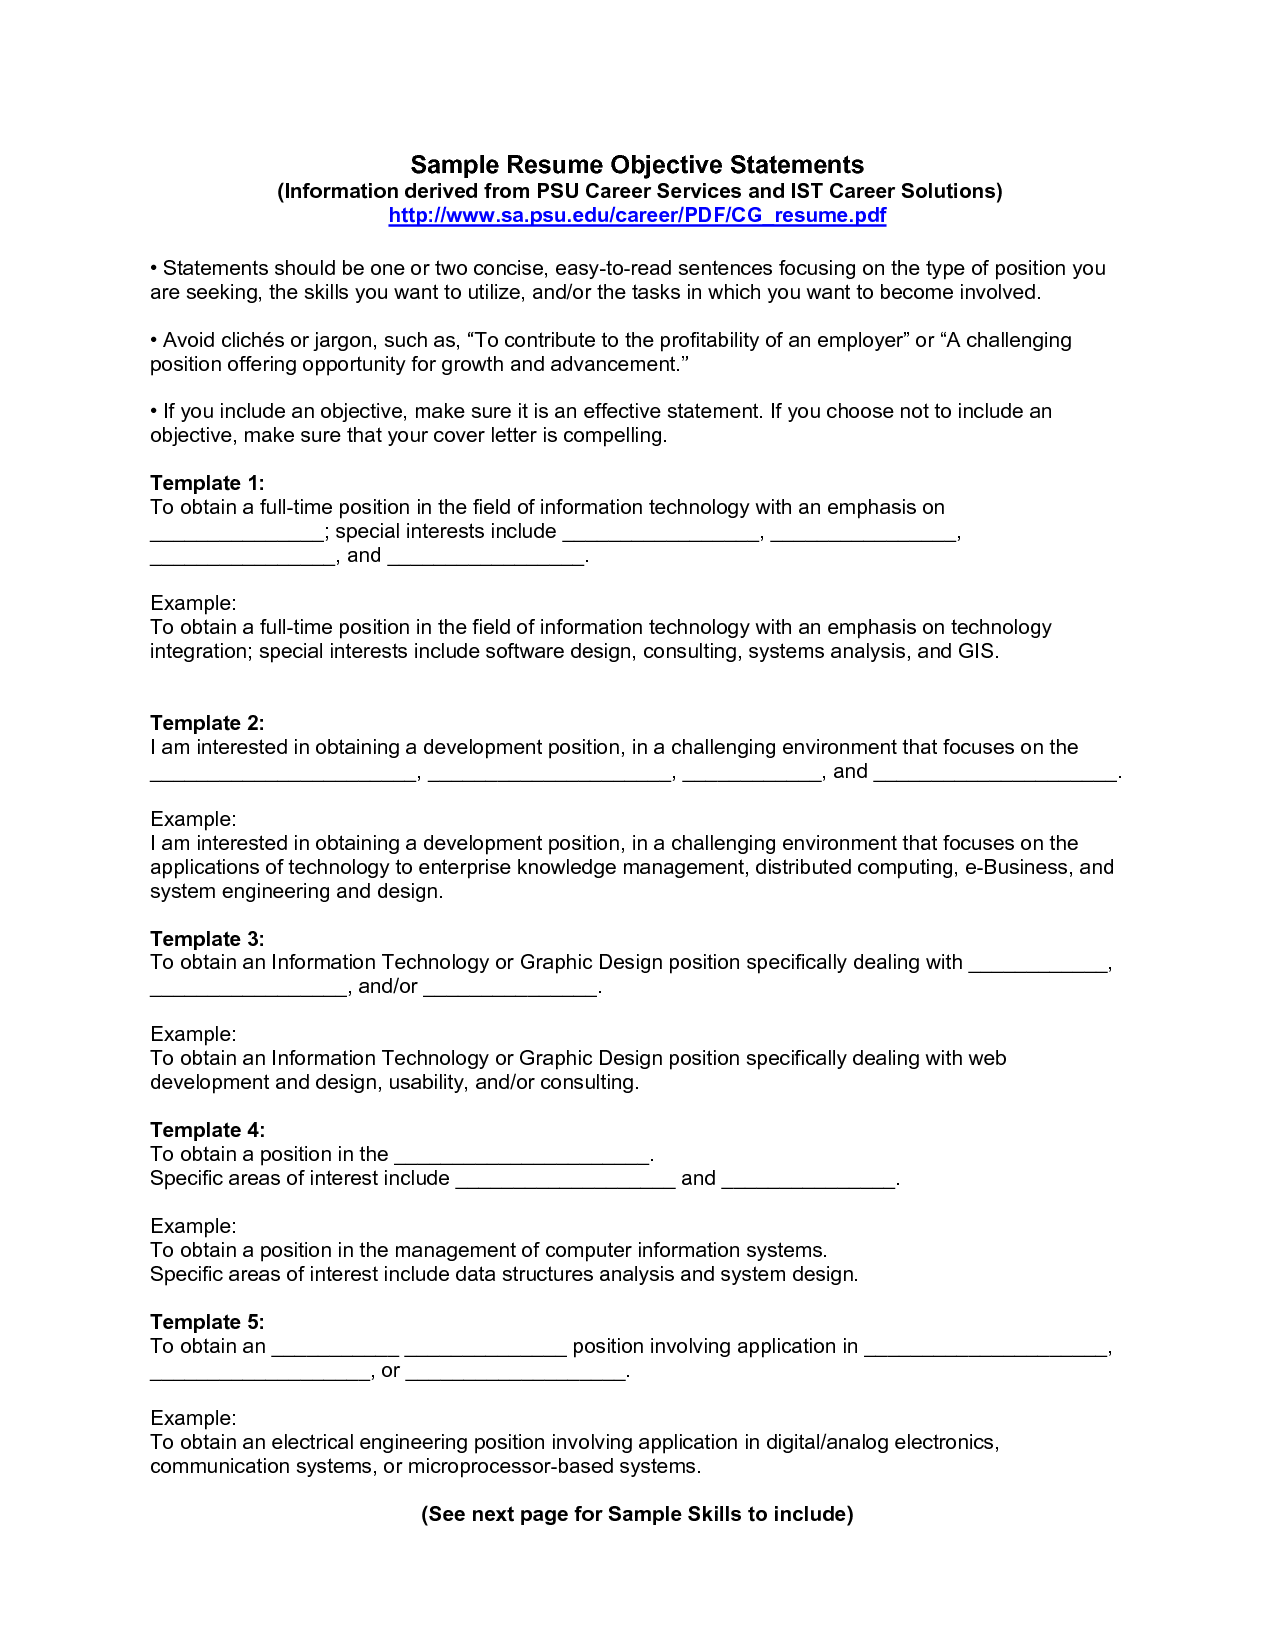 Job Objective Resume Examples